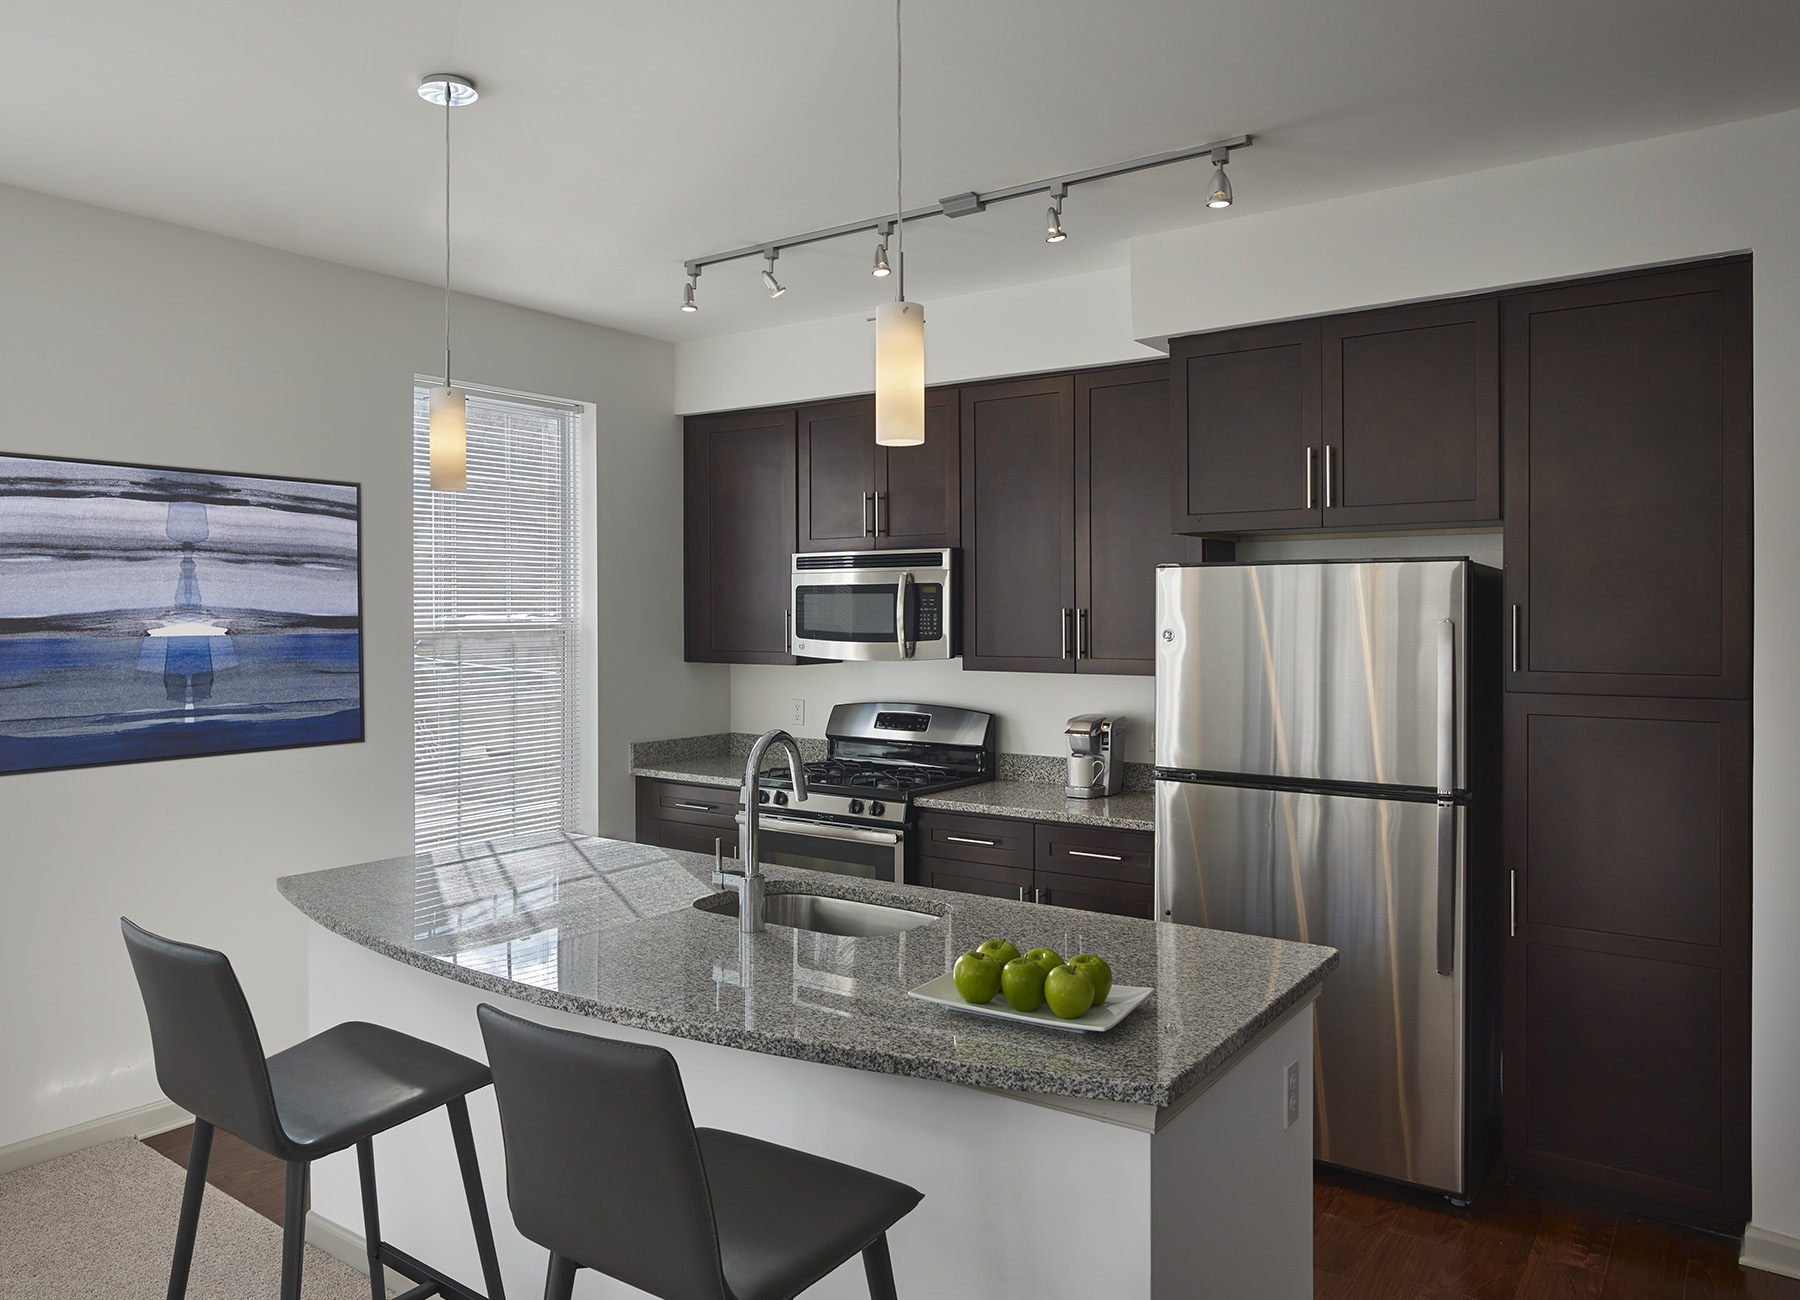 Kitchen island with bar stools, dark cabinets, and stainless steel appliances